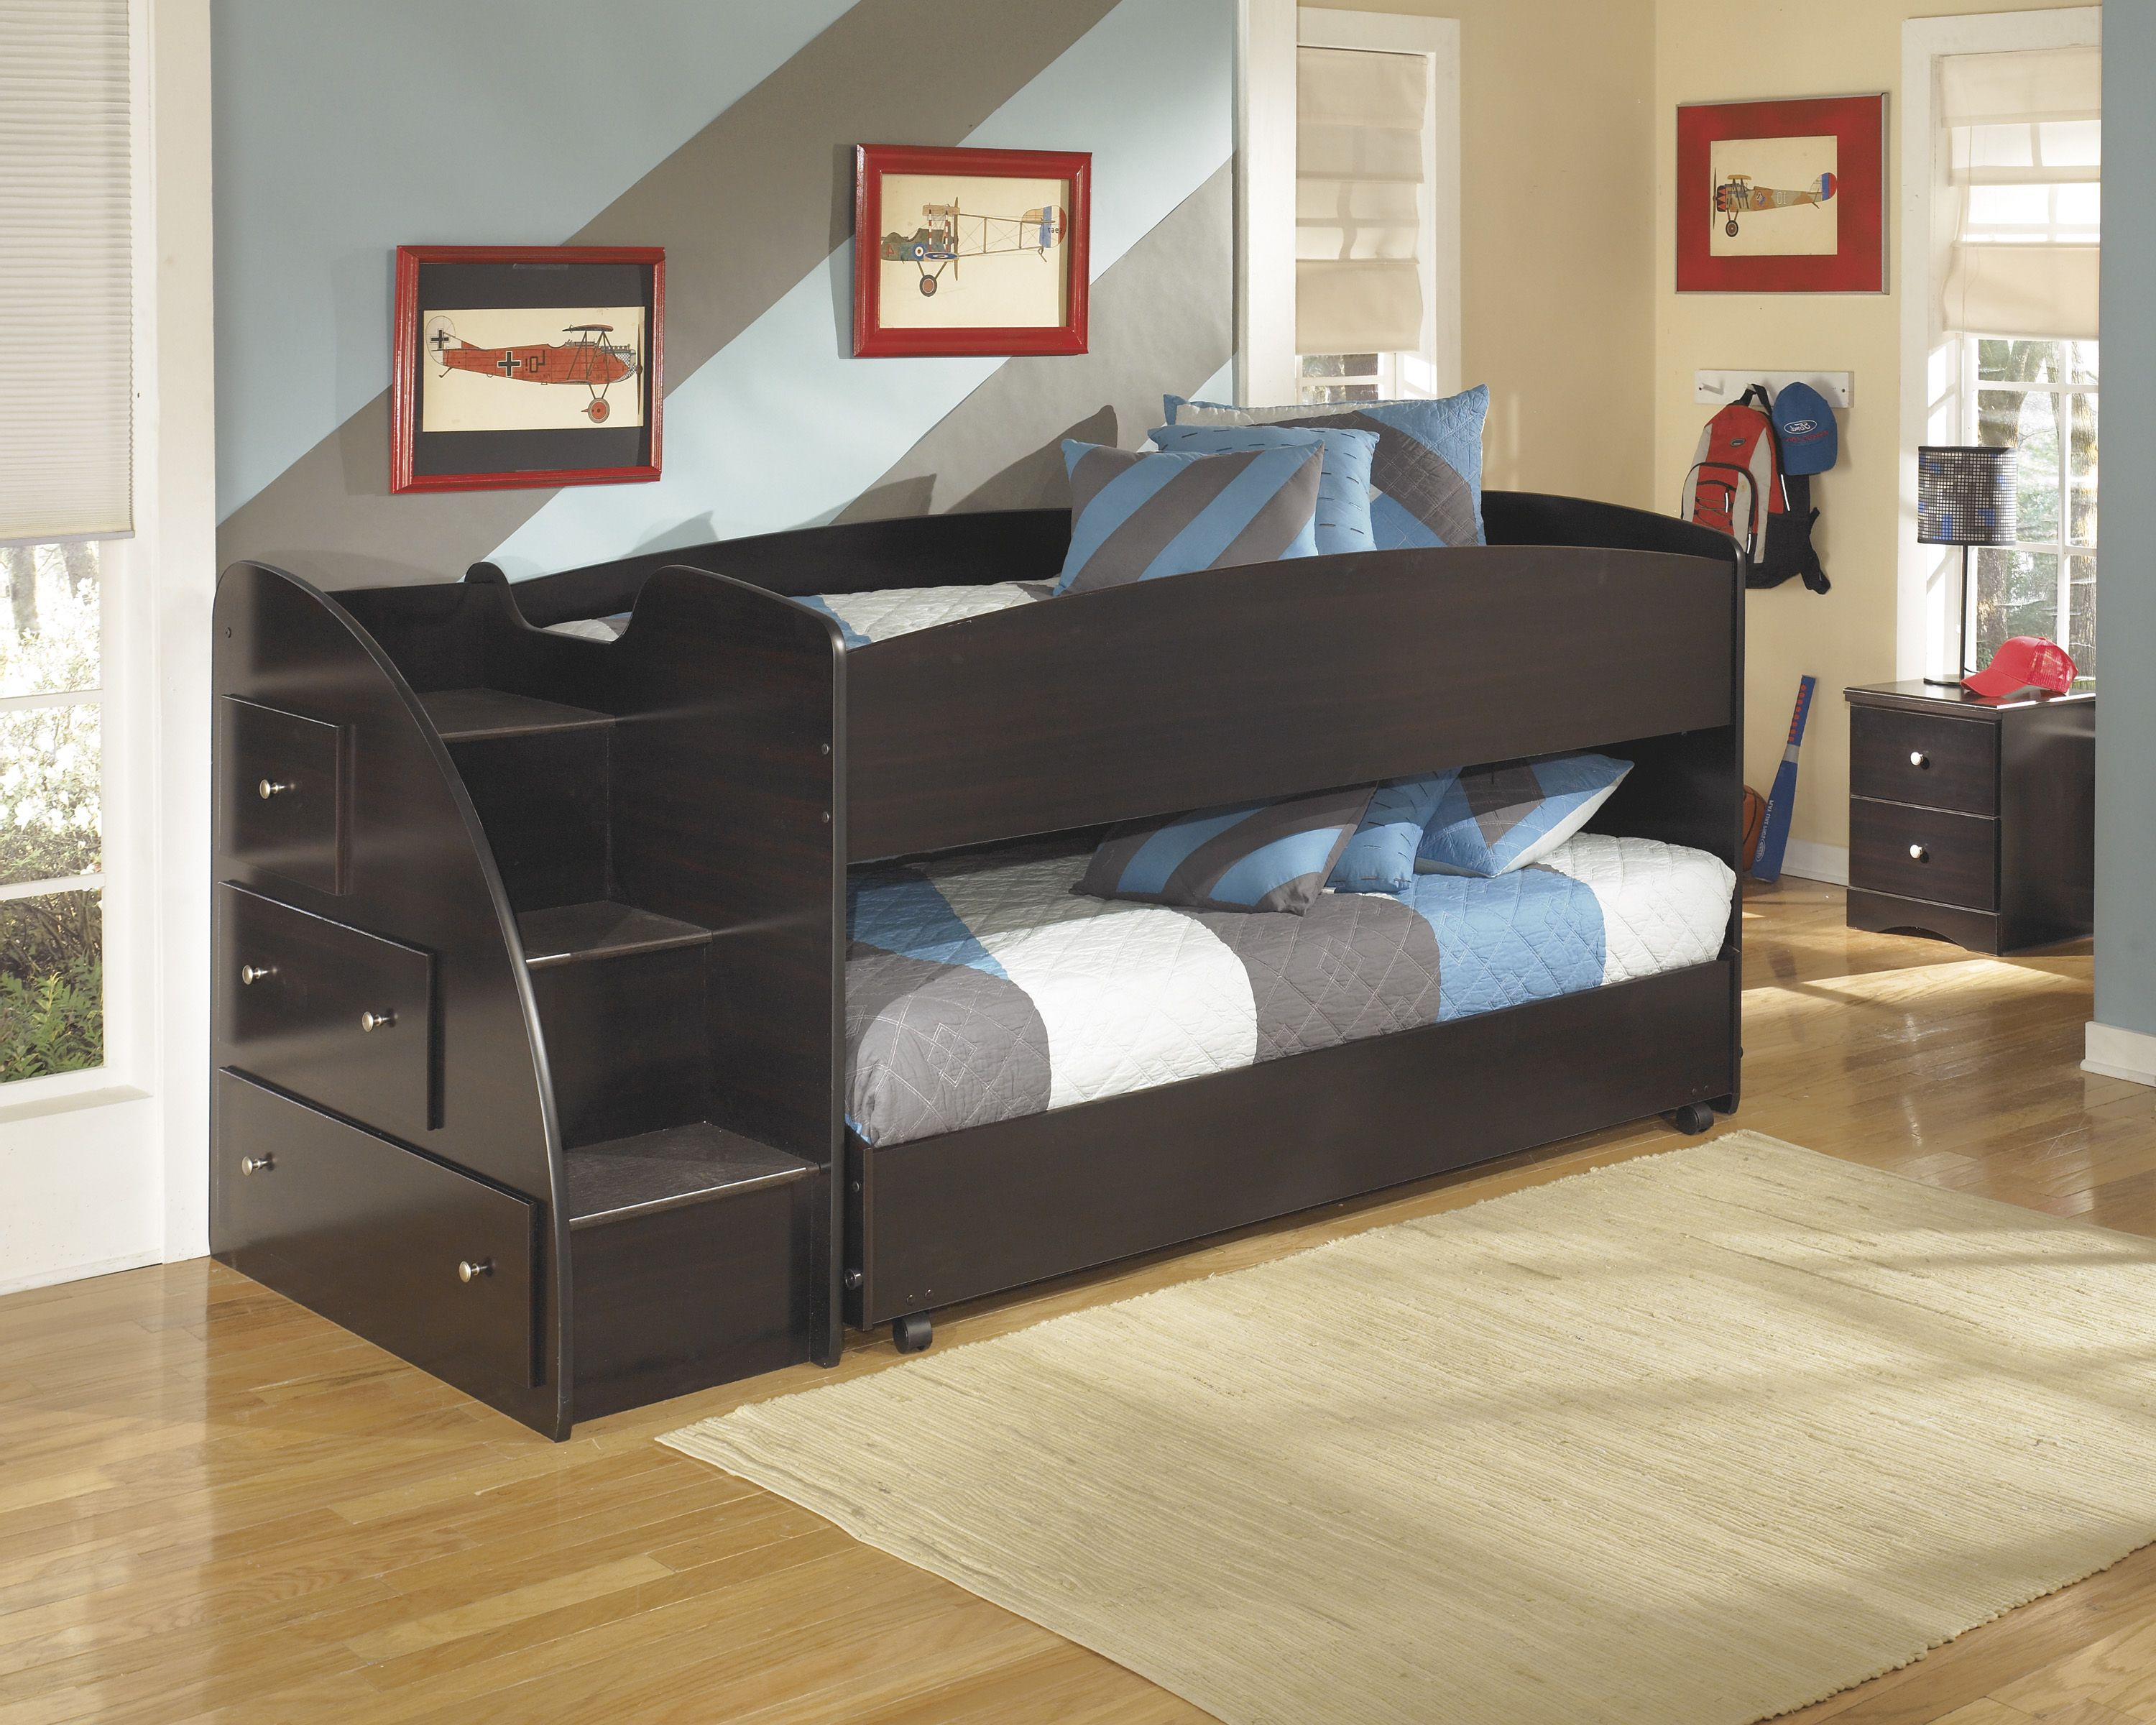 Embrace Loft Trundle Bed Easyhome Ca Loft Bed Twin Loft Bed